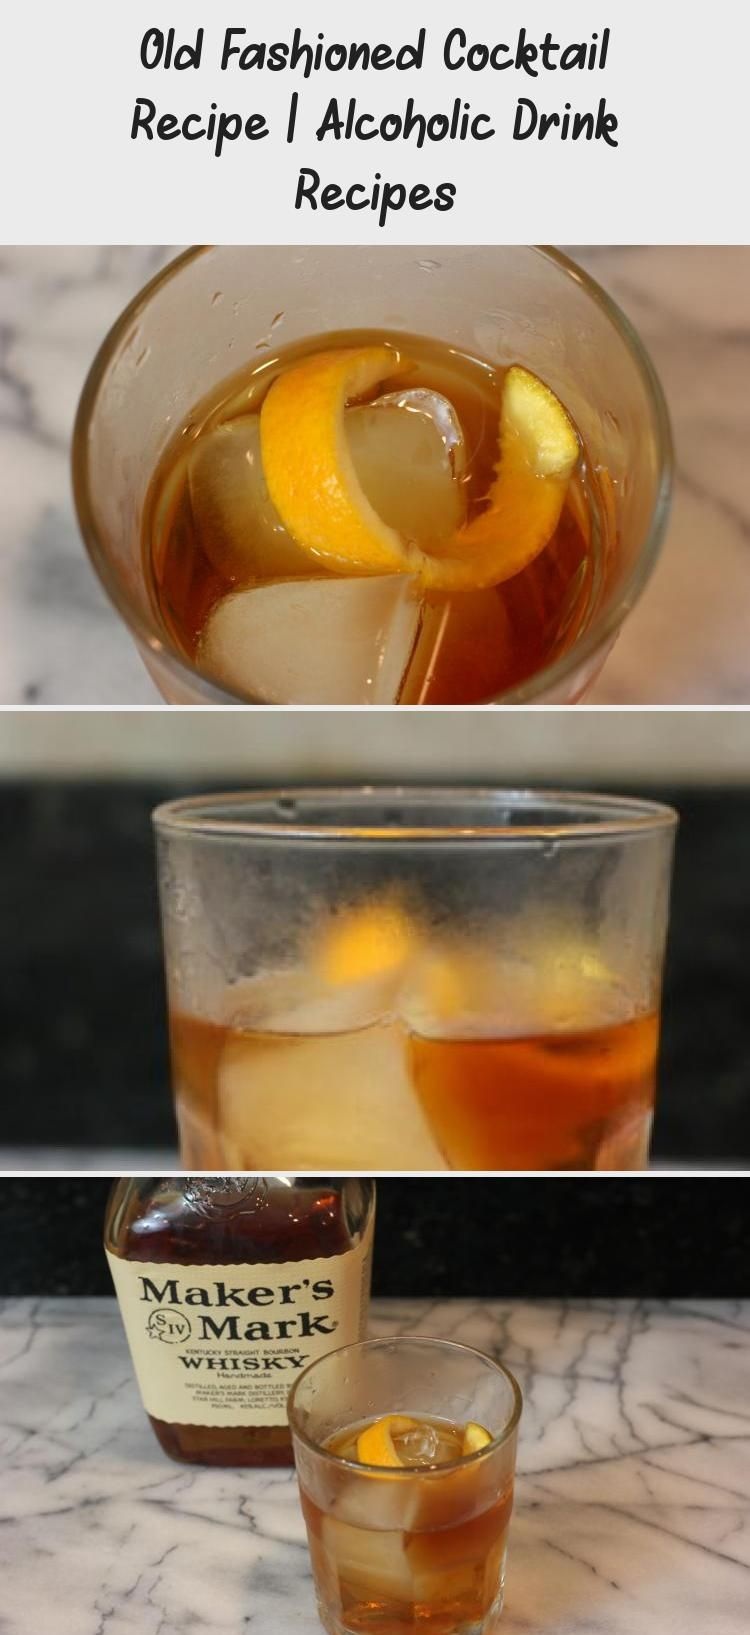 How To Make An Old Fashioned Cocktail Recipe For This Alcoholic